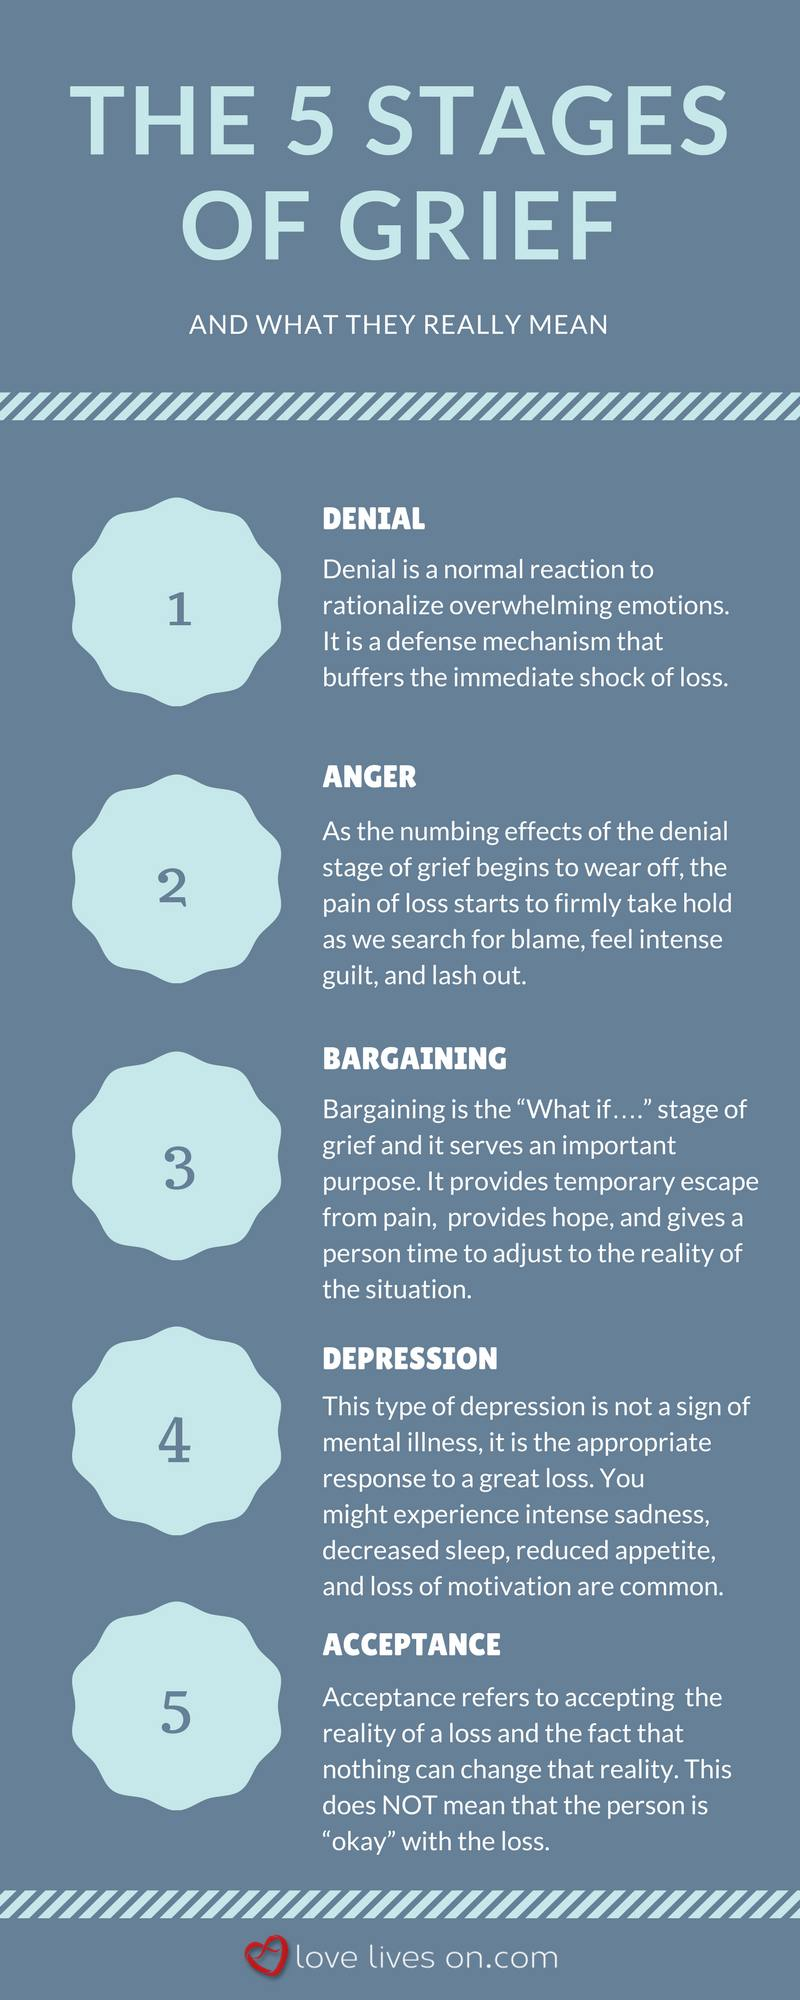 Break grief of the up 7 stages Relationships Ending: